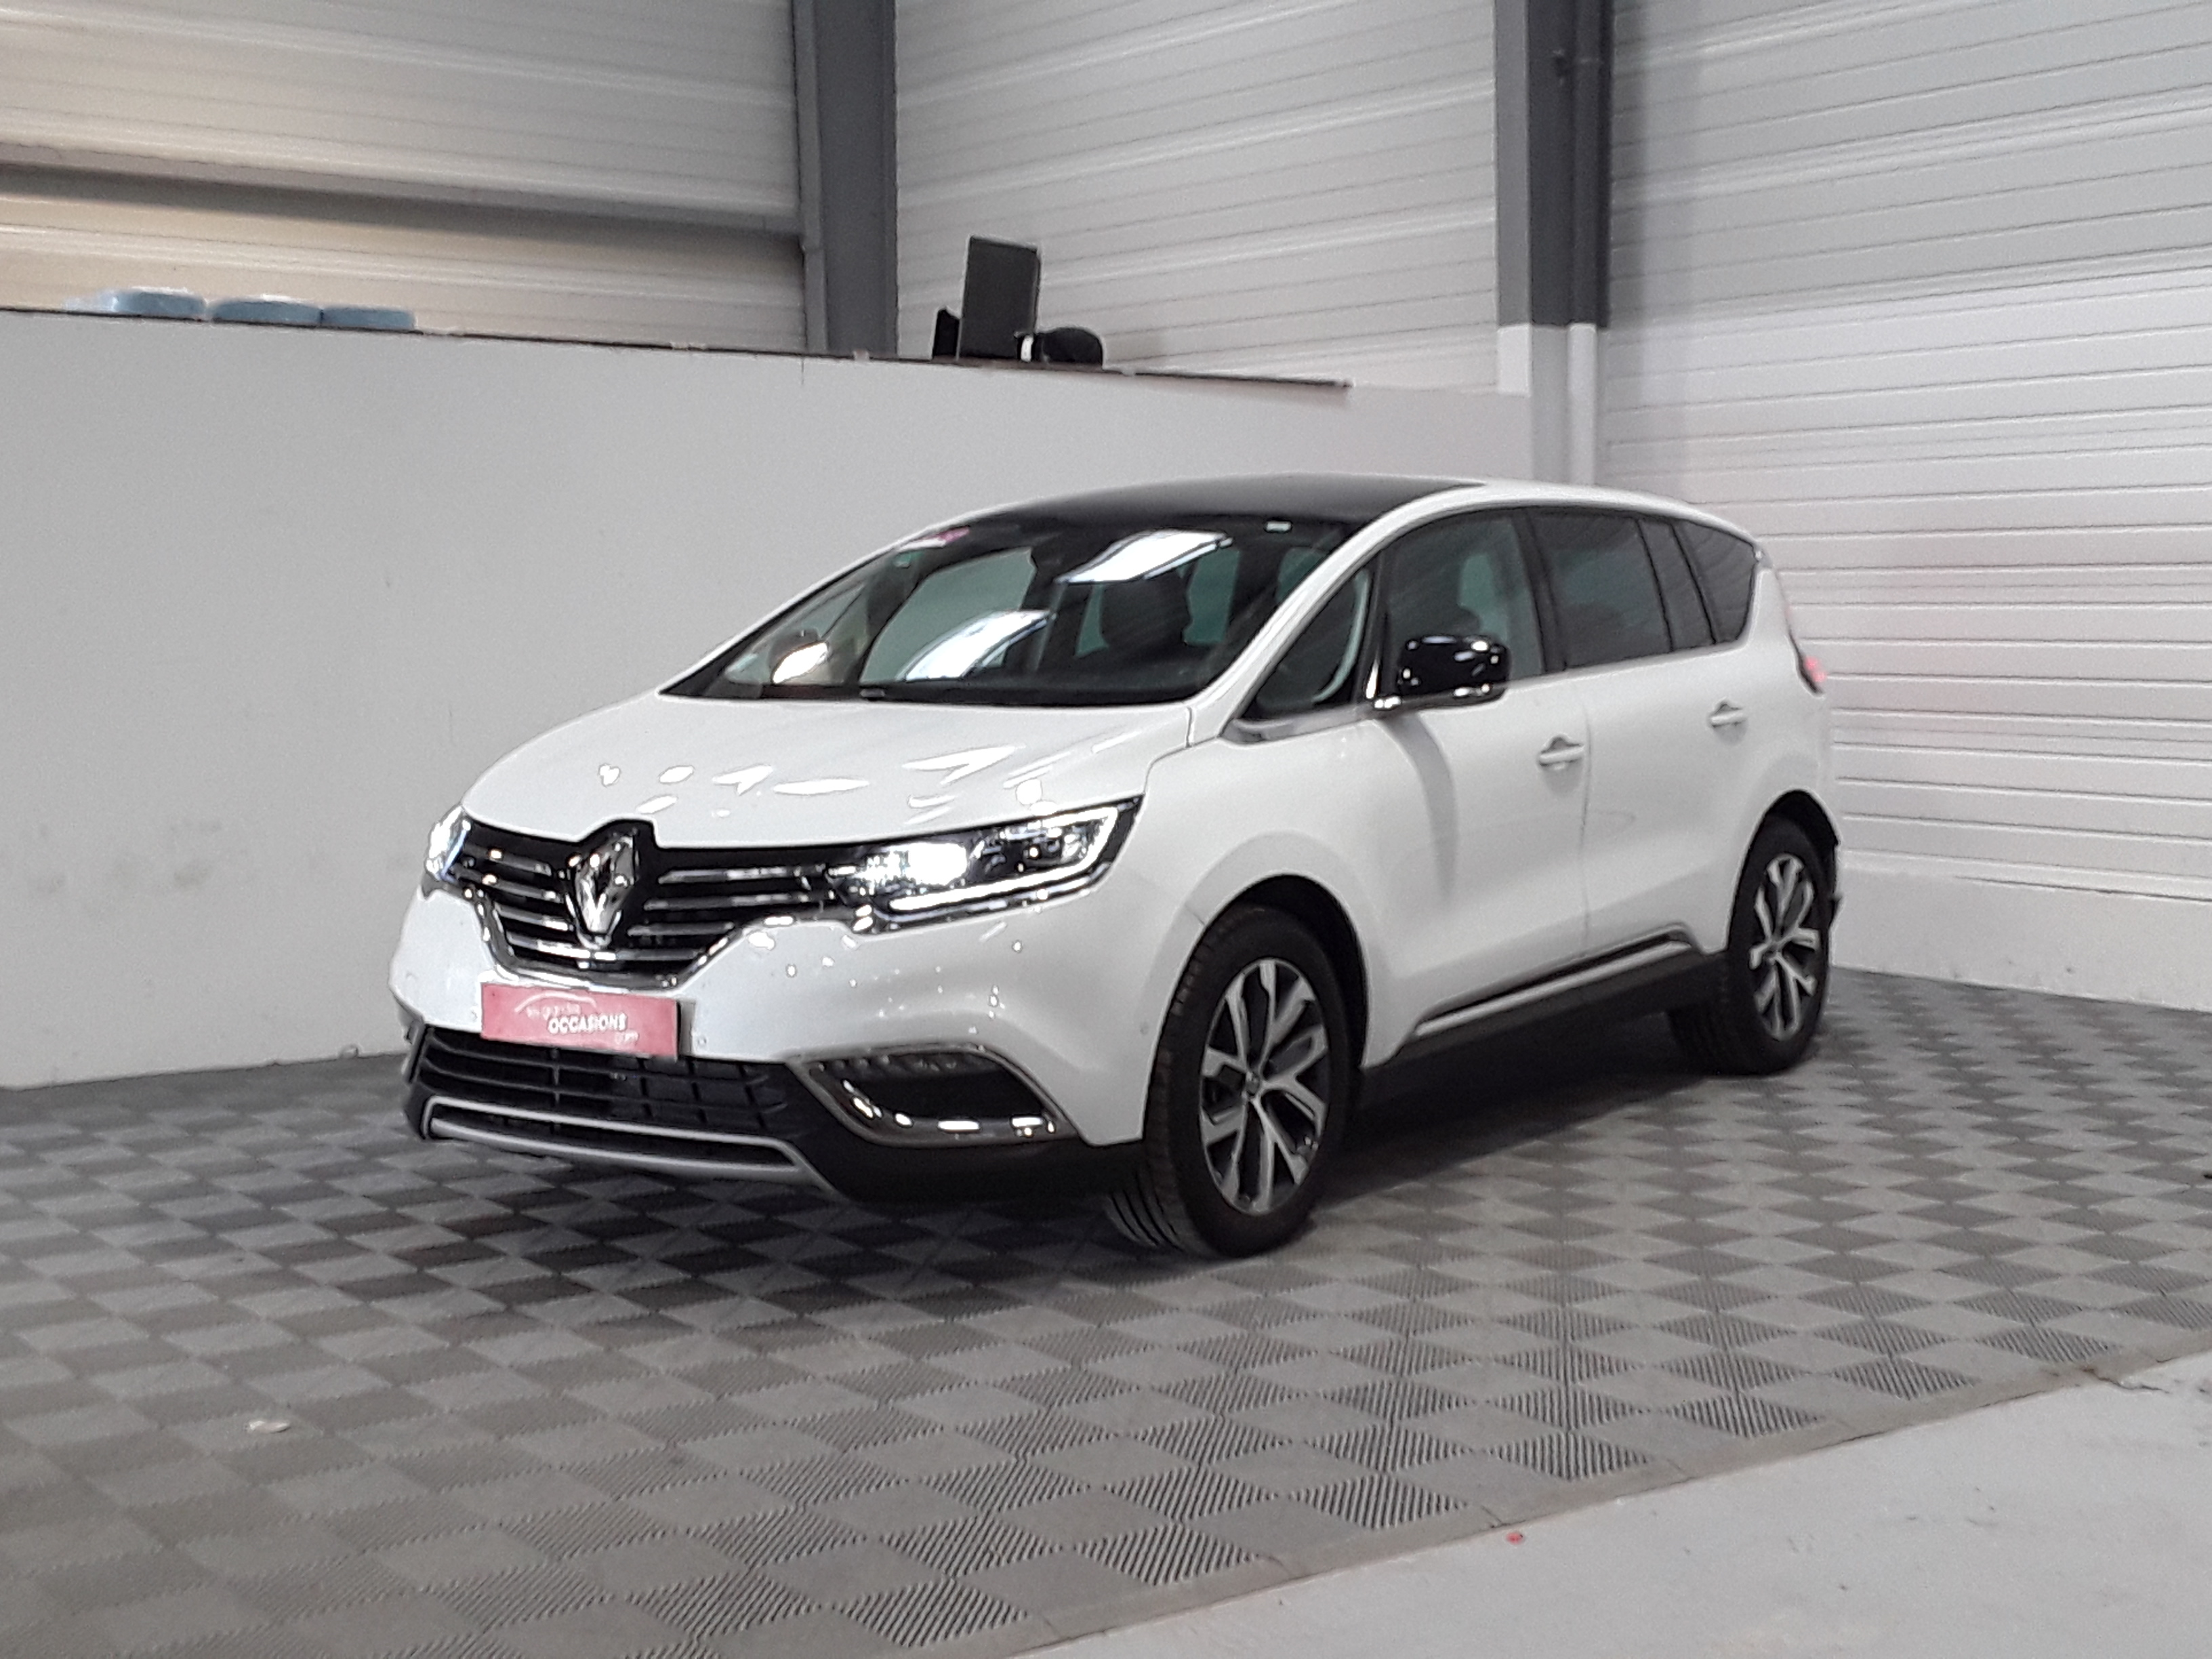 RENAULT ESPACE V dCi 160 Energy Twin Turbo Zen EDC - 7P d'occasion